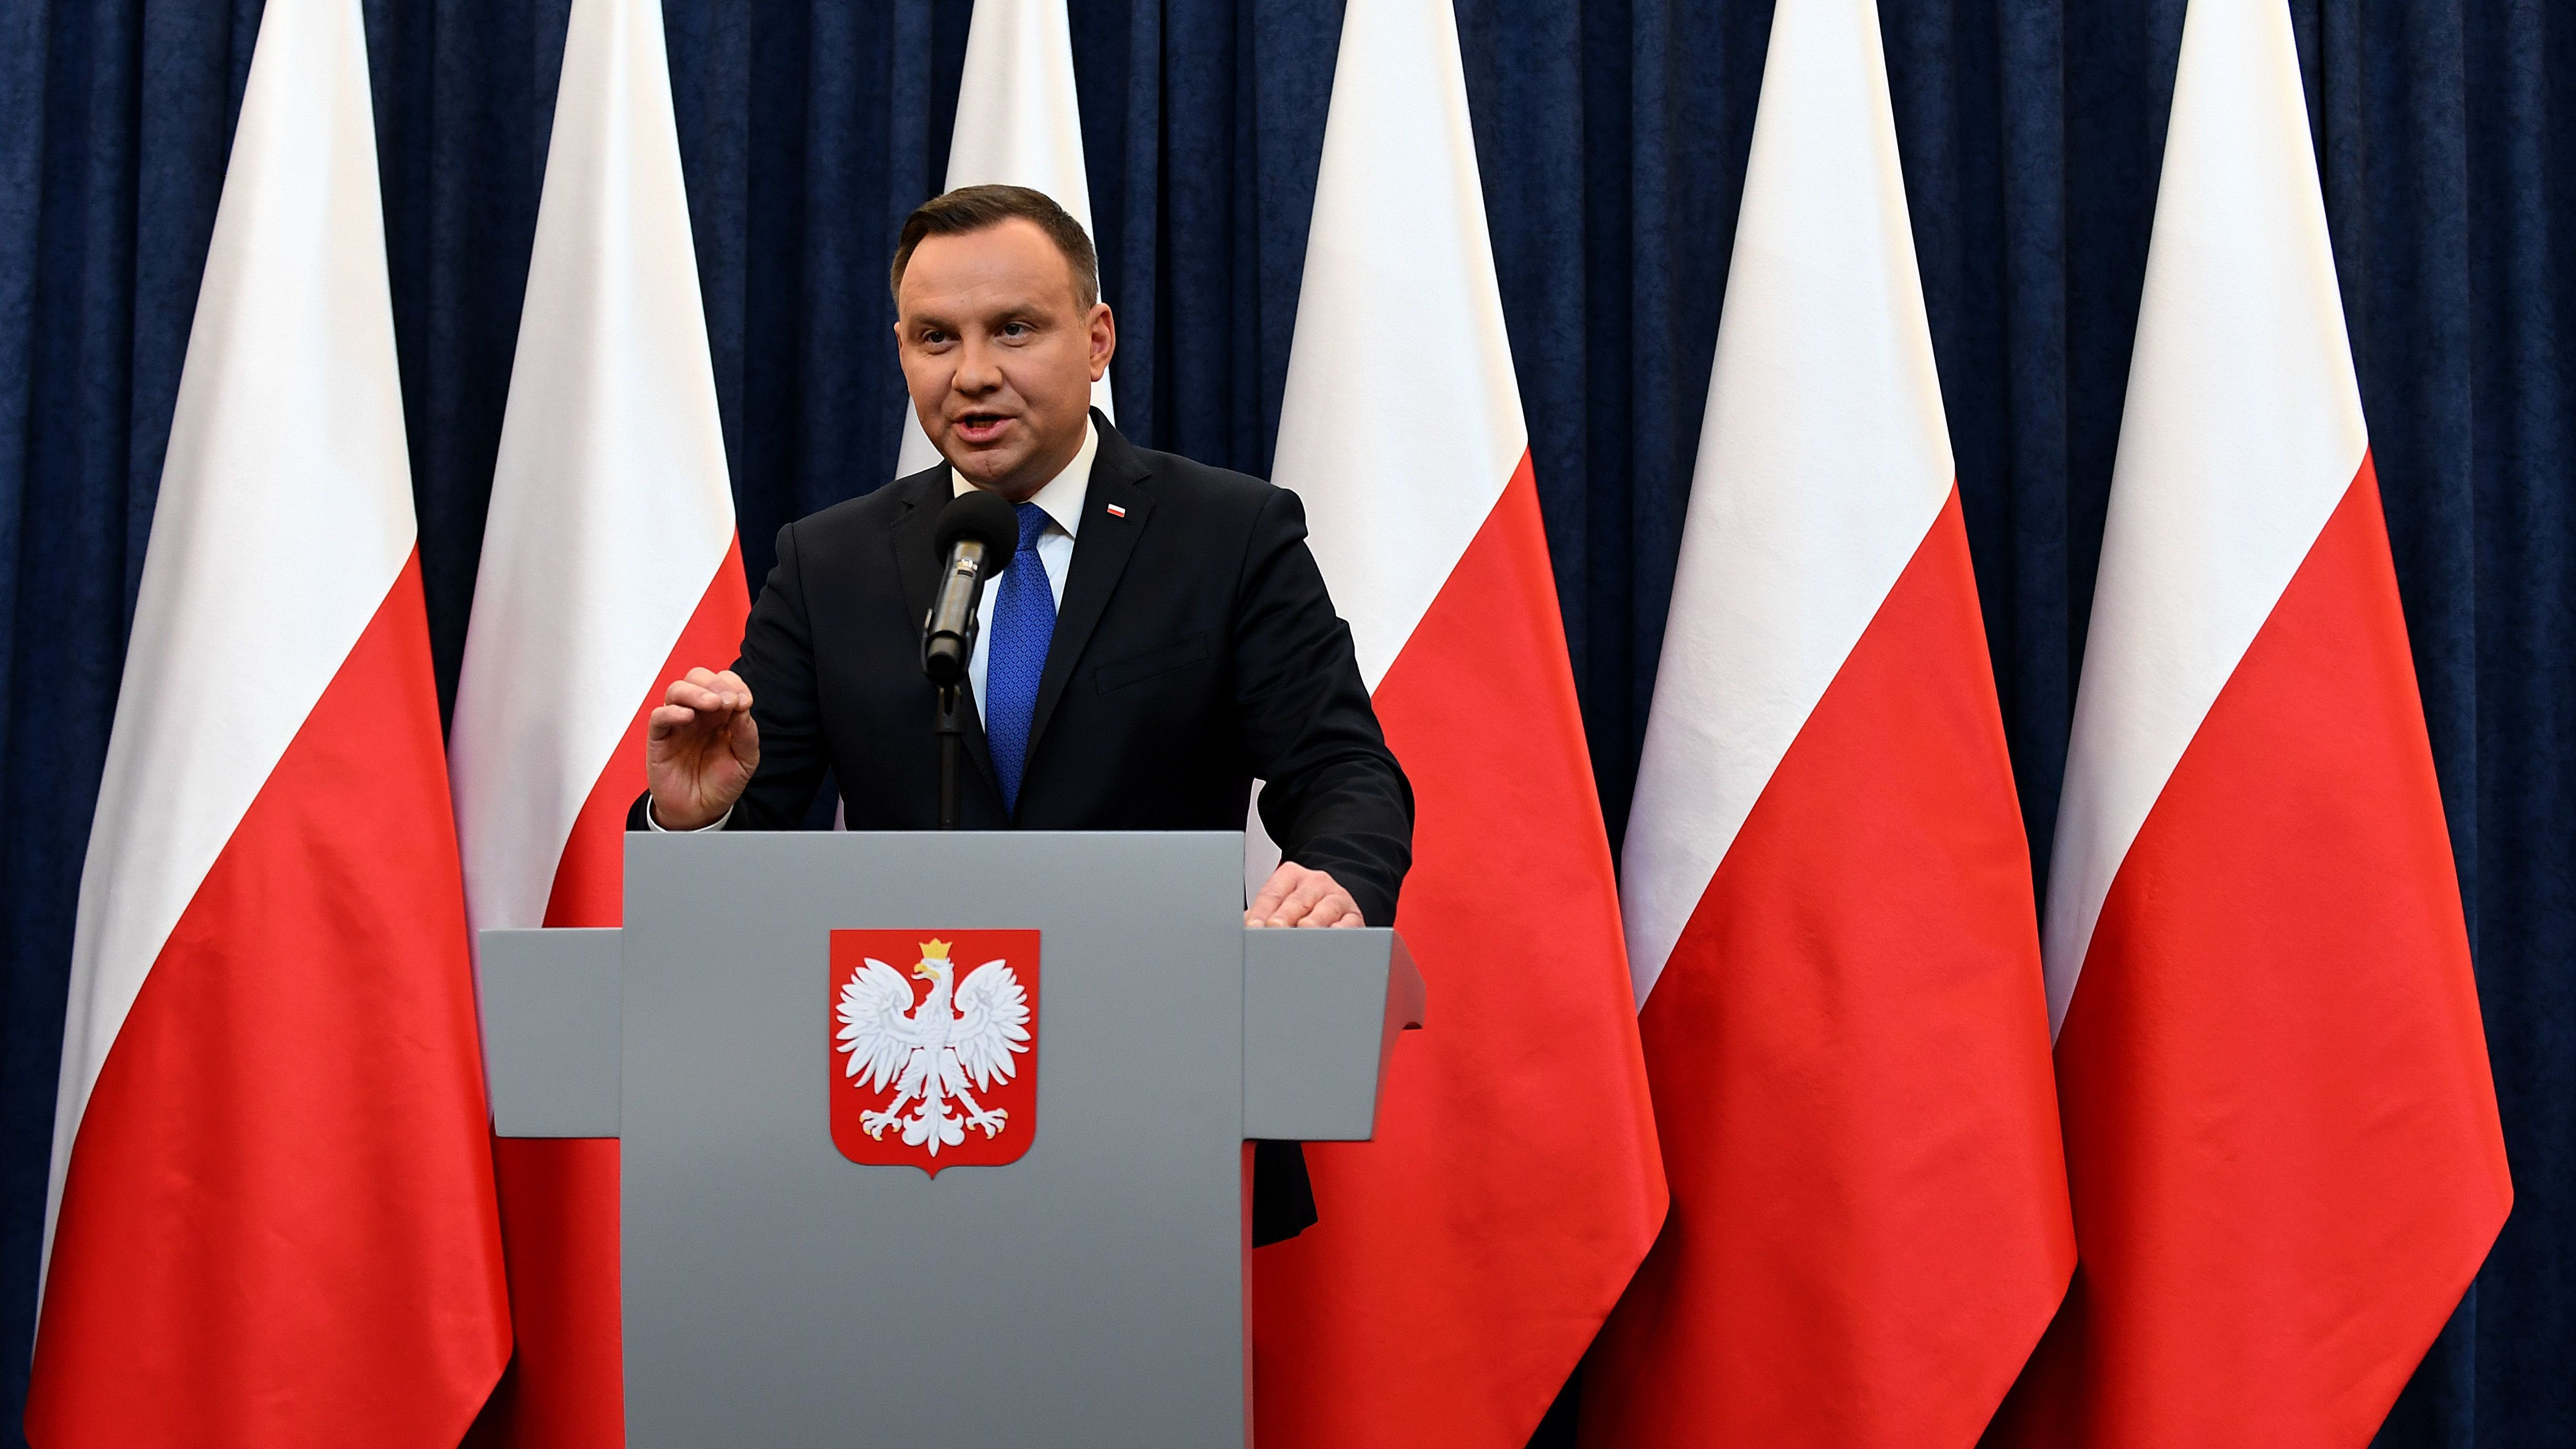 Poland's president signs controversial Holocaust bill